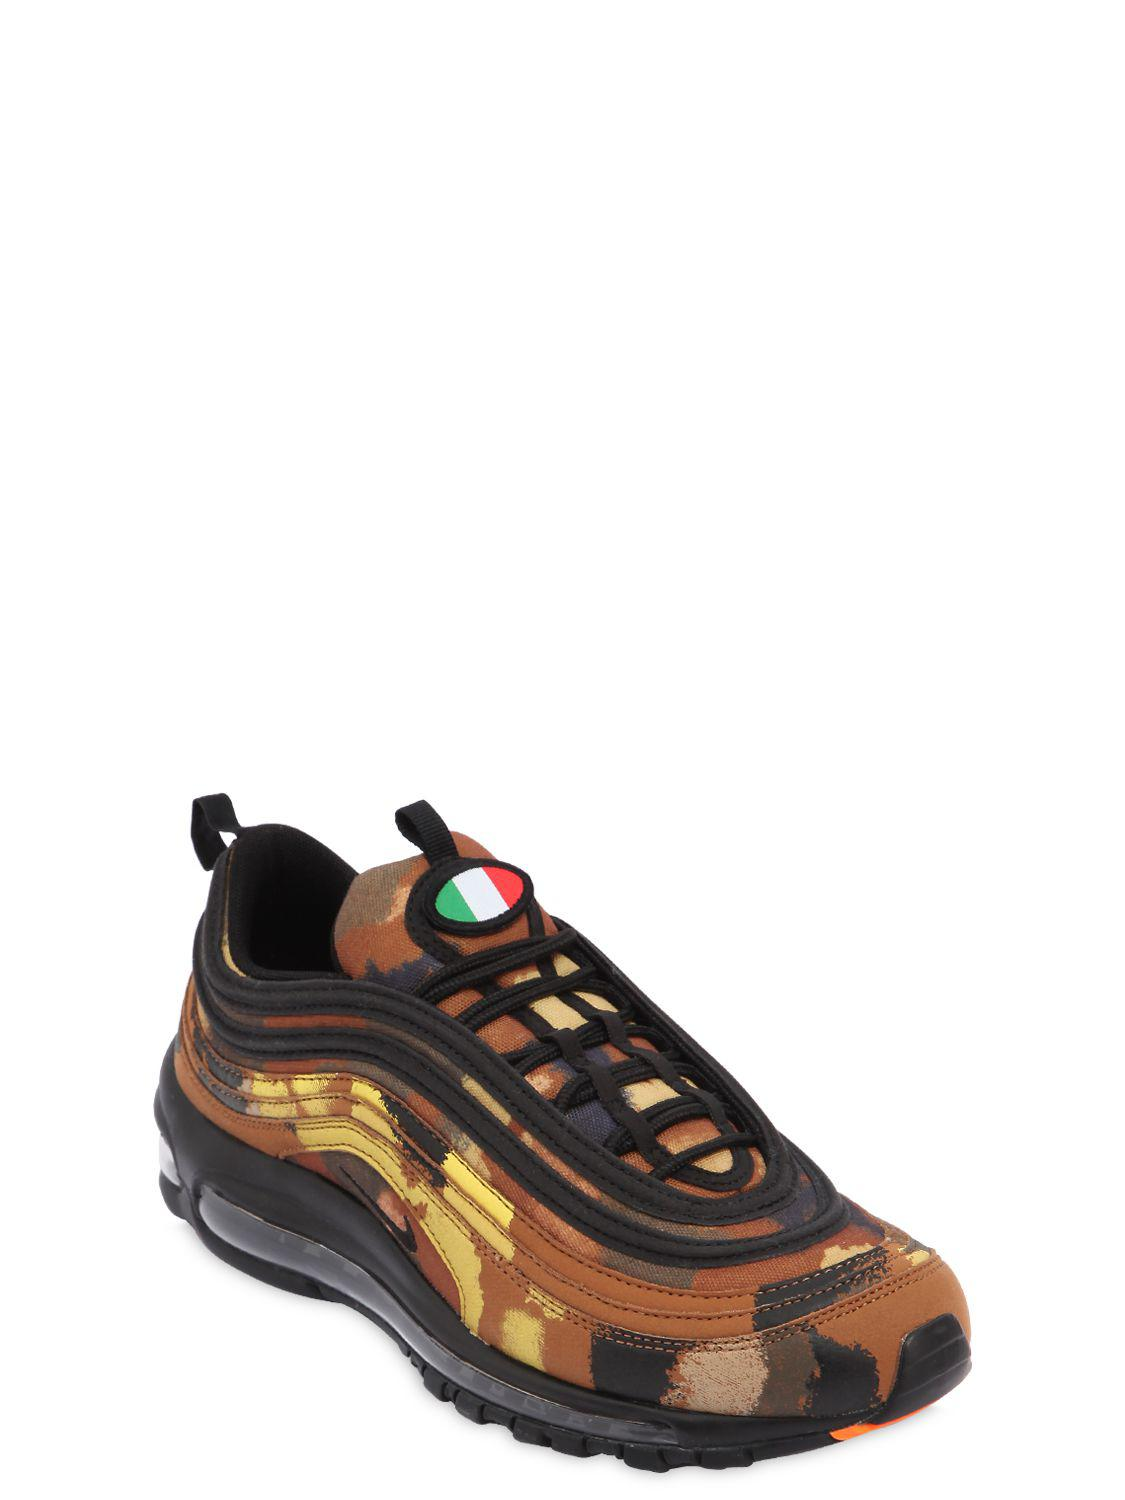 reputable site ed903 99ba2 Nike Air Max 97 Camo Pack Italy Sneakers for Men - Save 51% - Lyst